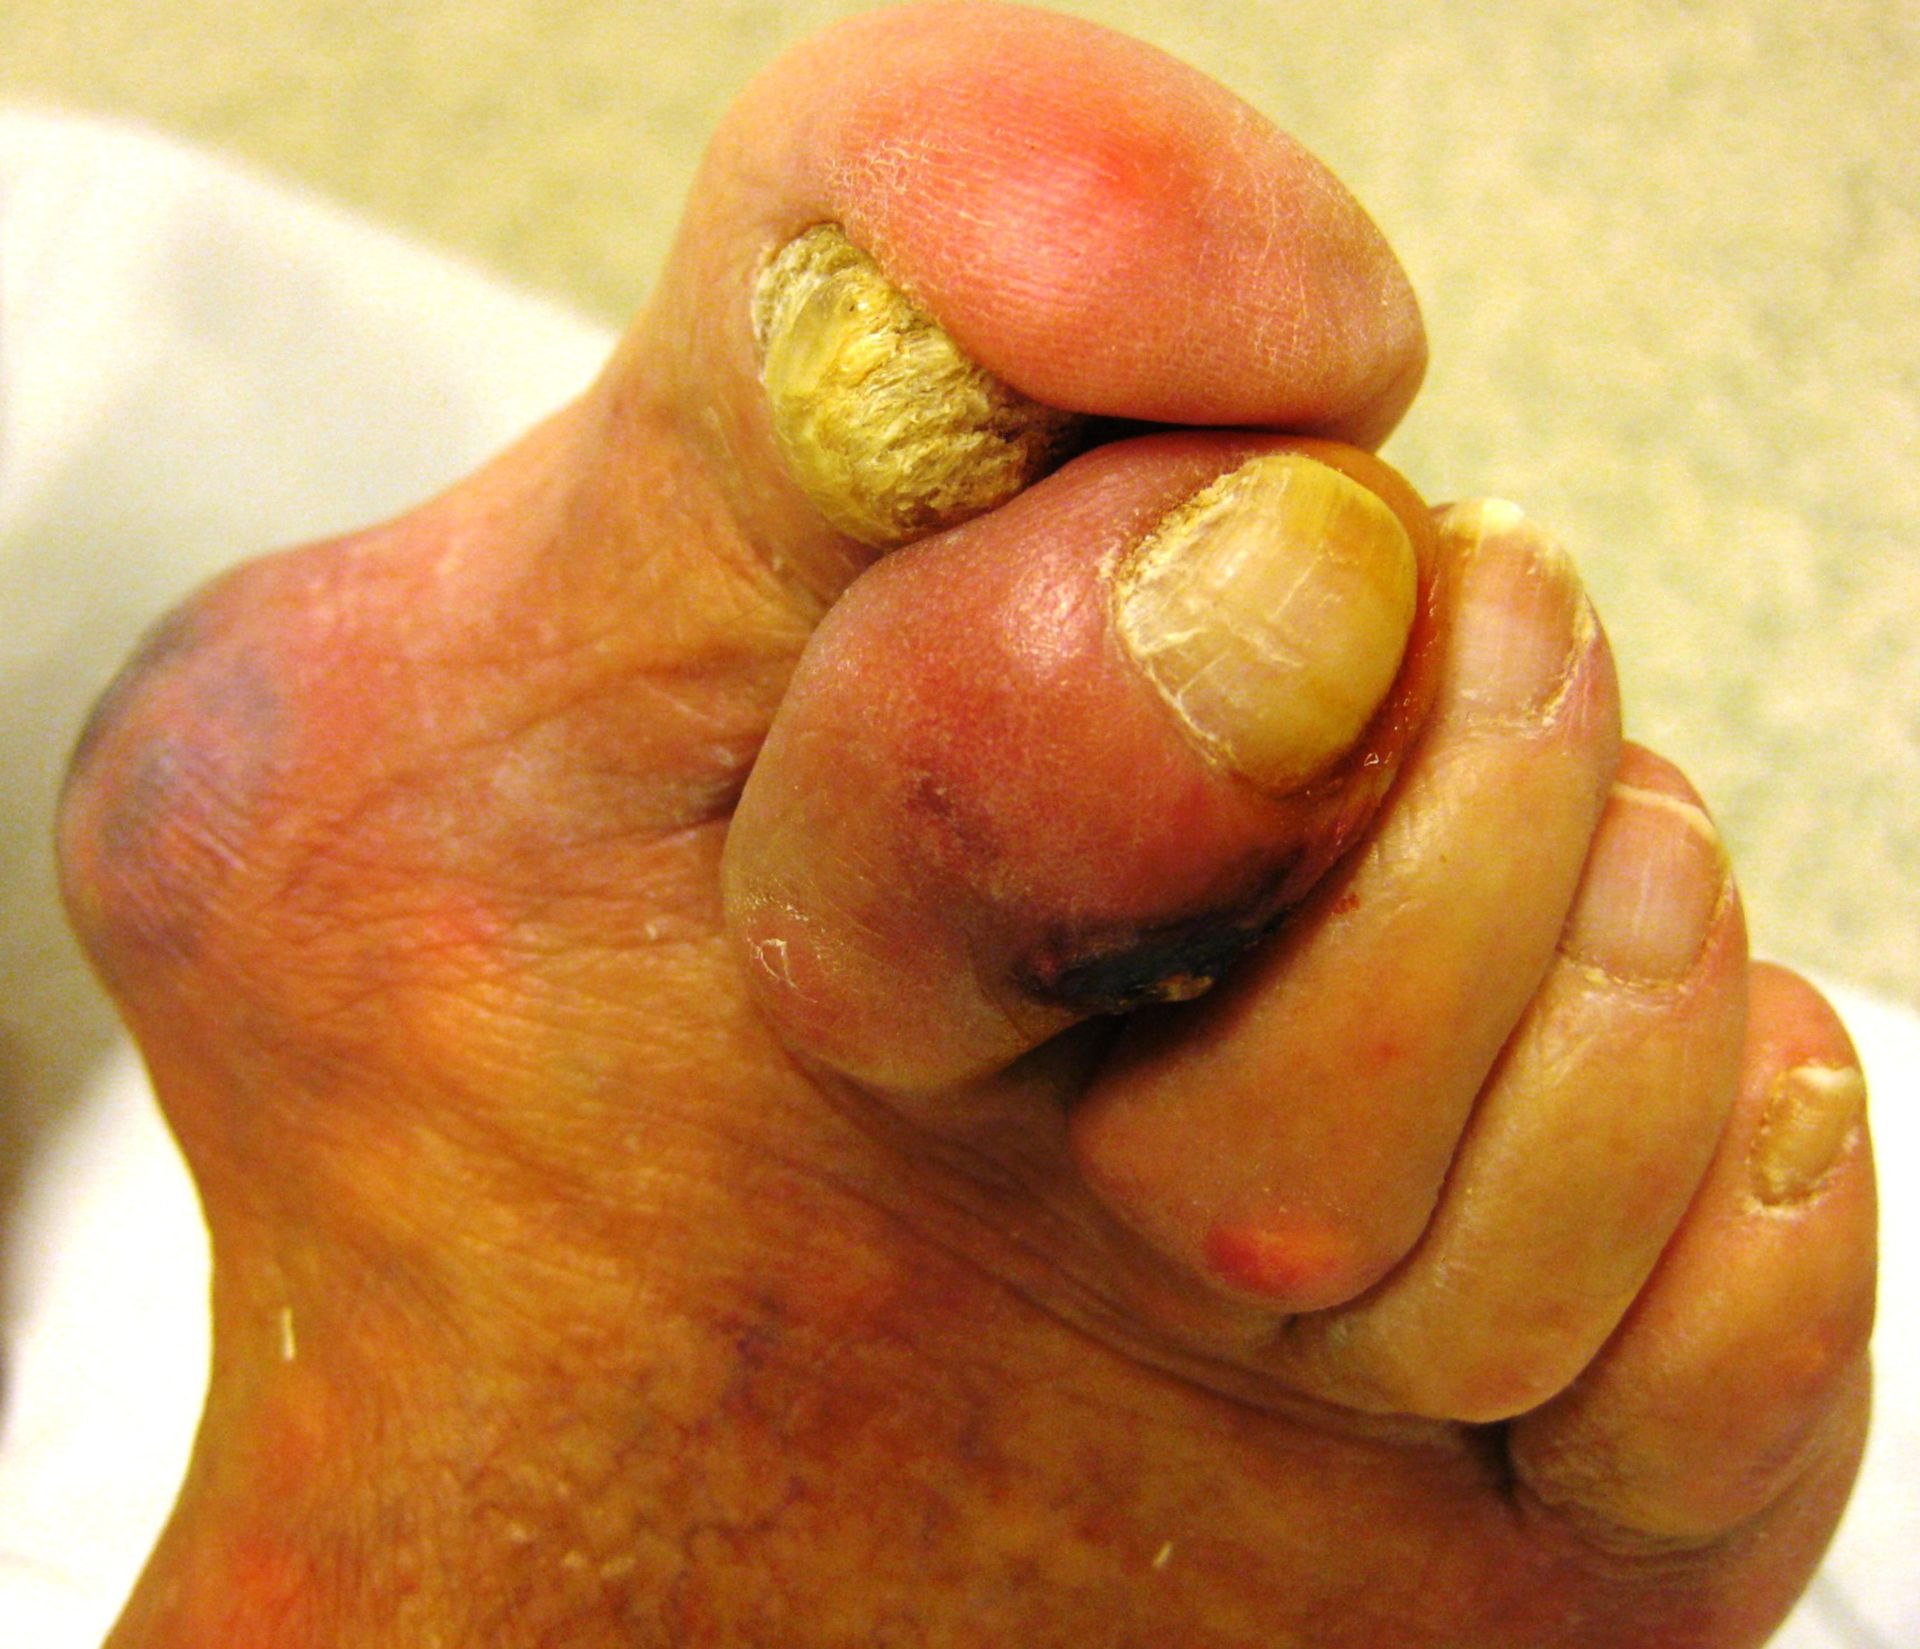 Diabetic foot and gout